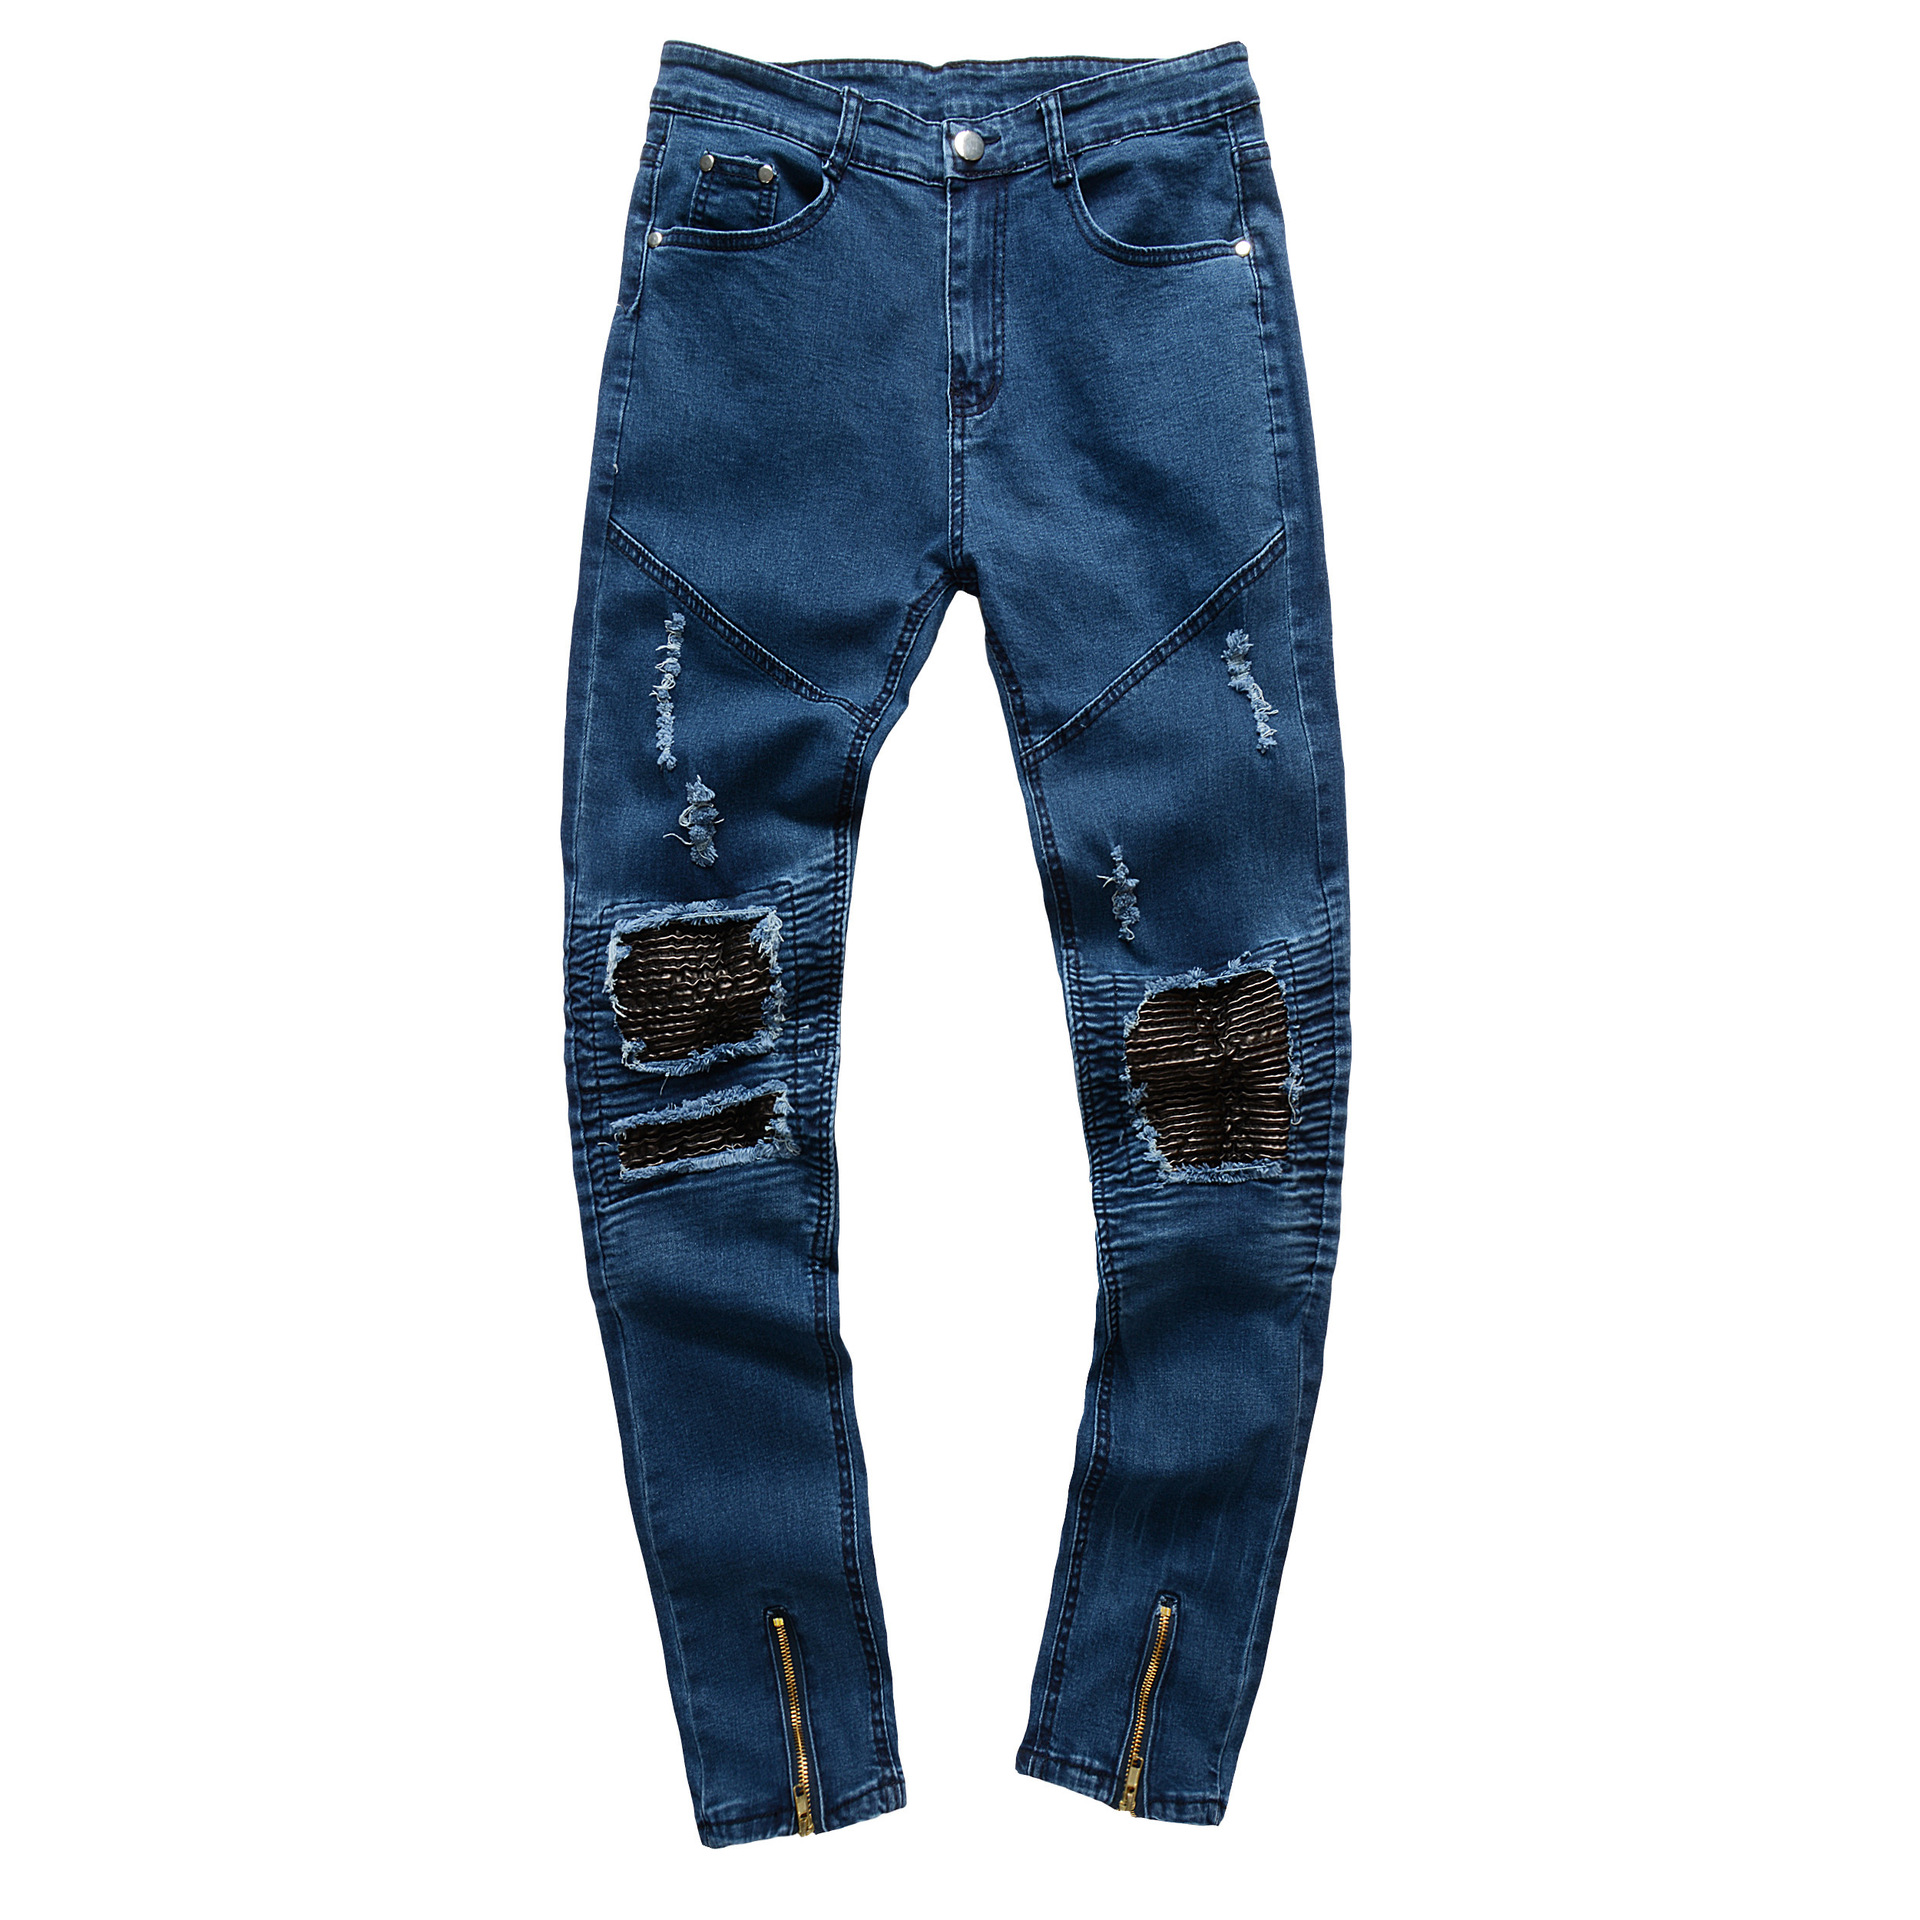 New arrived free shipping custom made logo cotton high quality mens biker jeans фото